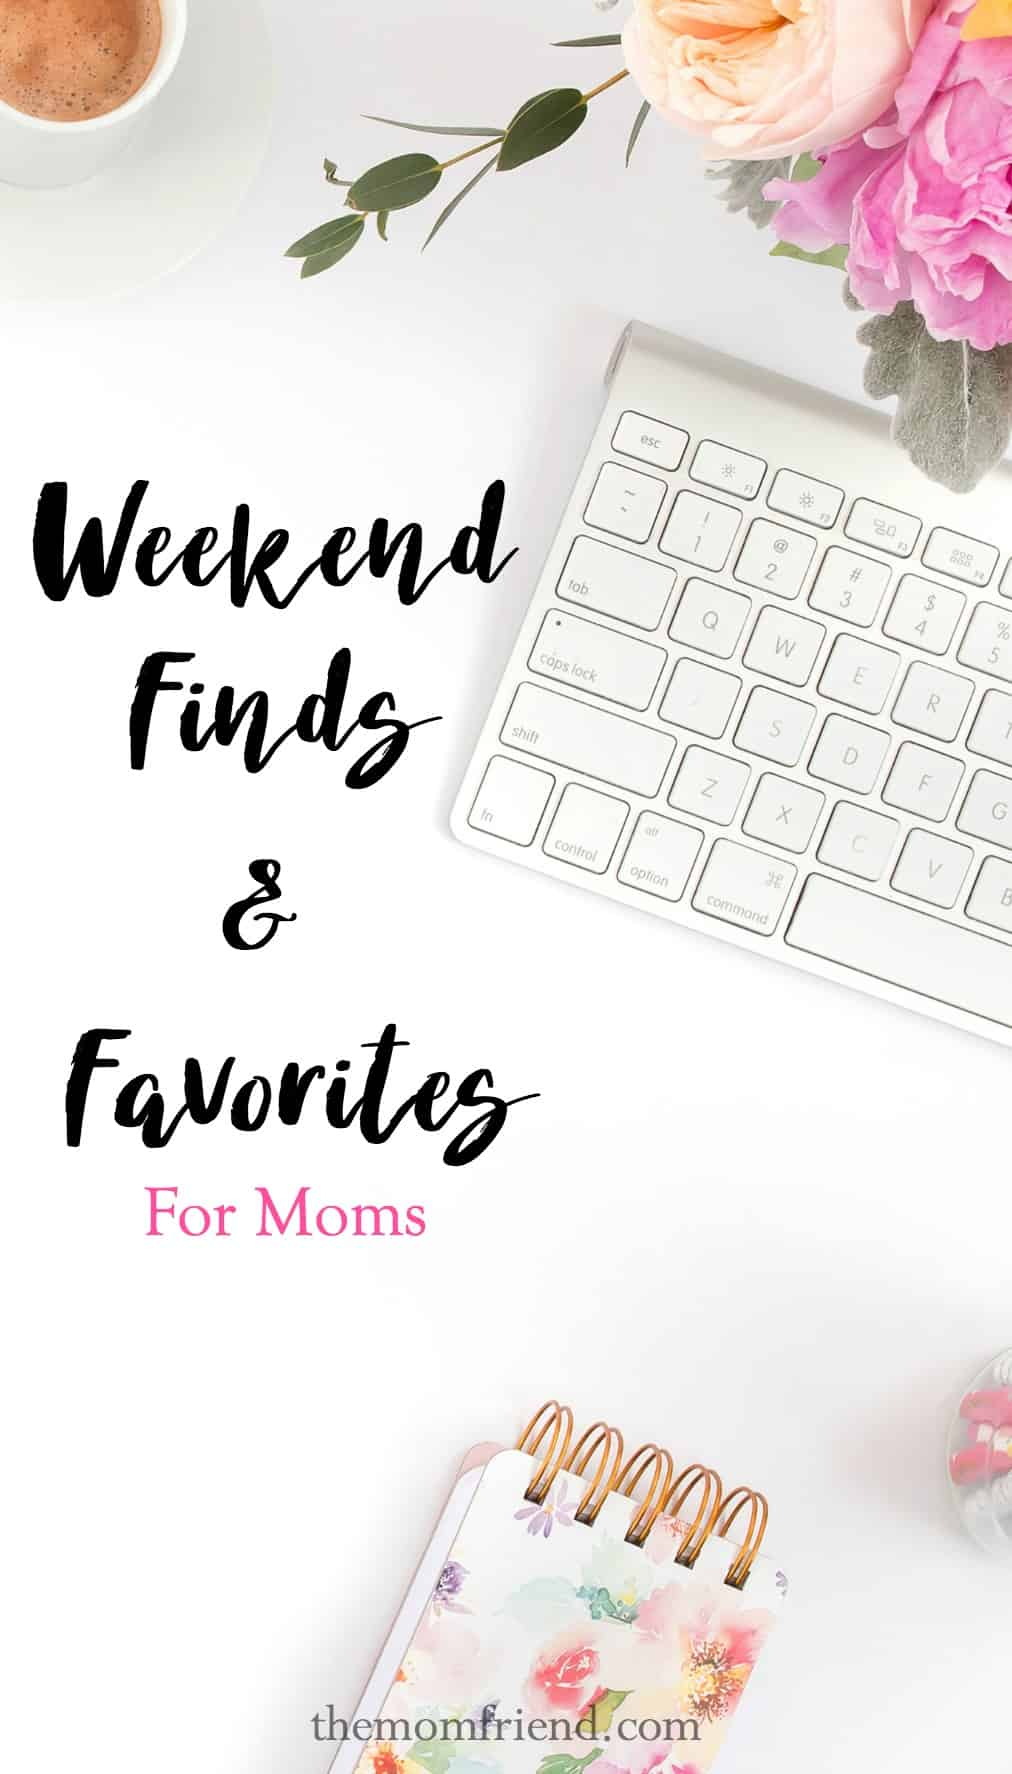 Hey Mama! Your time is precious. Here are a few quick favorite finds from this week, including toddler discipline, saving kids from drowning, and hot new baby products!